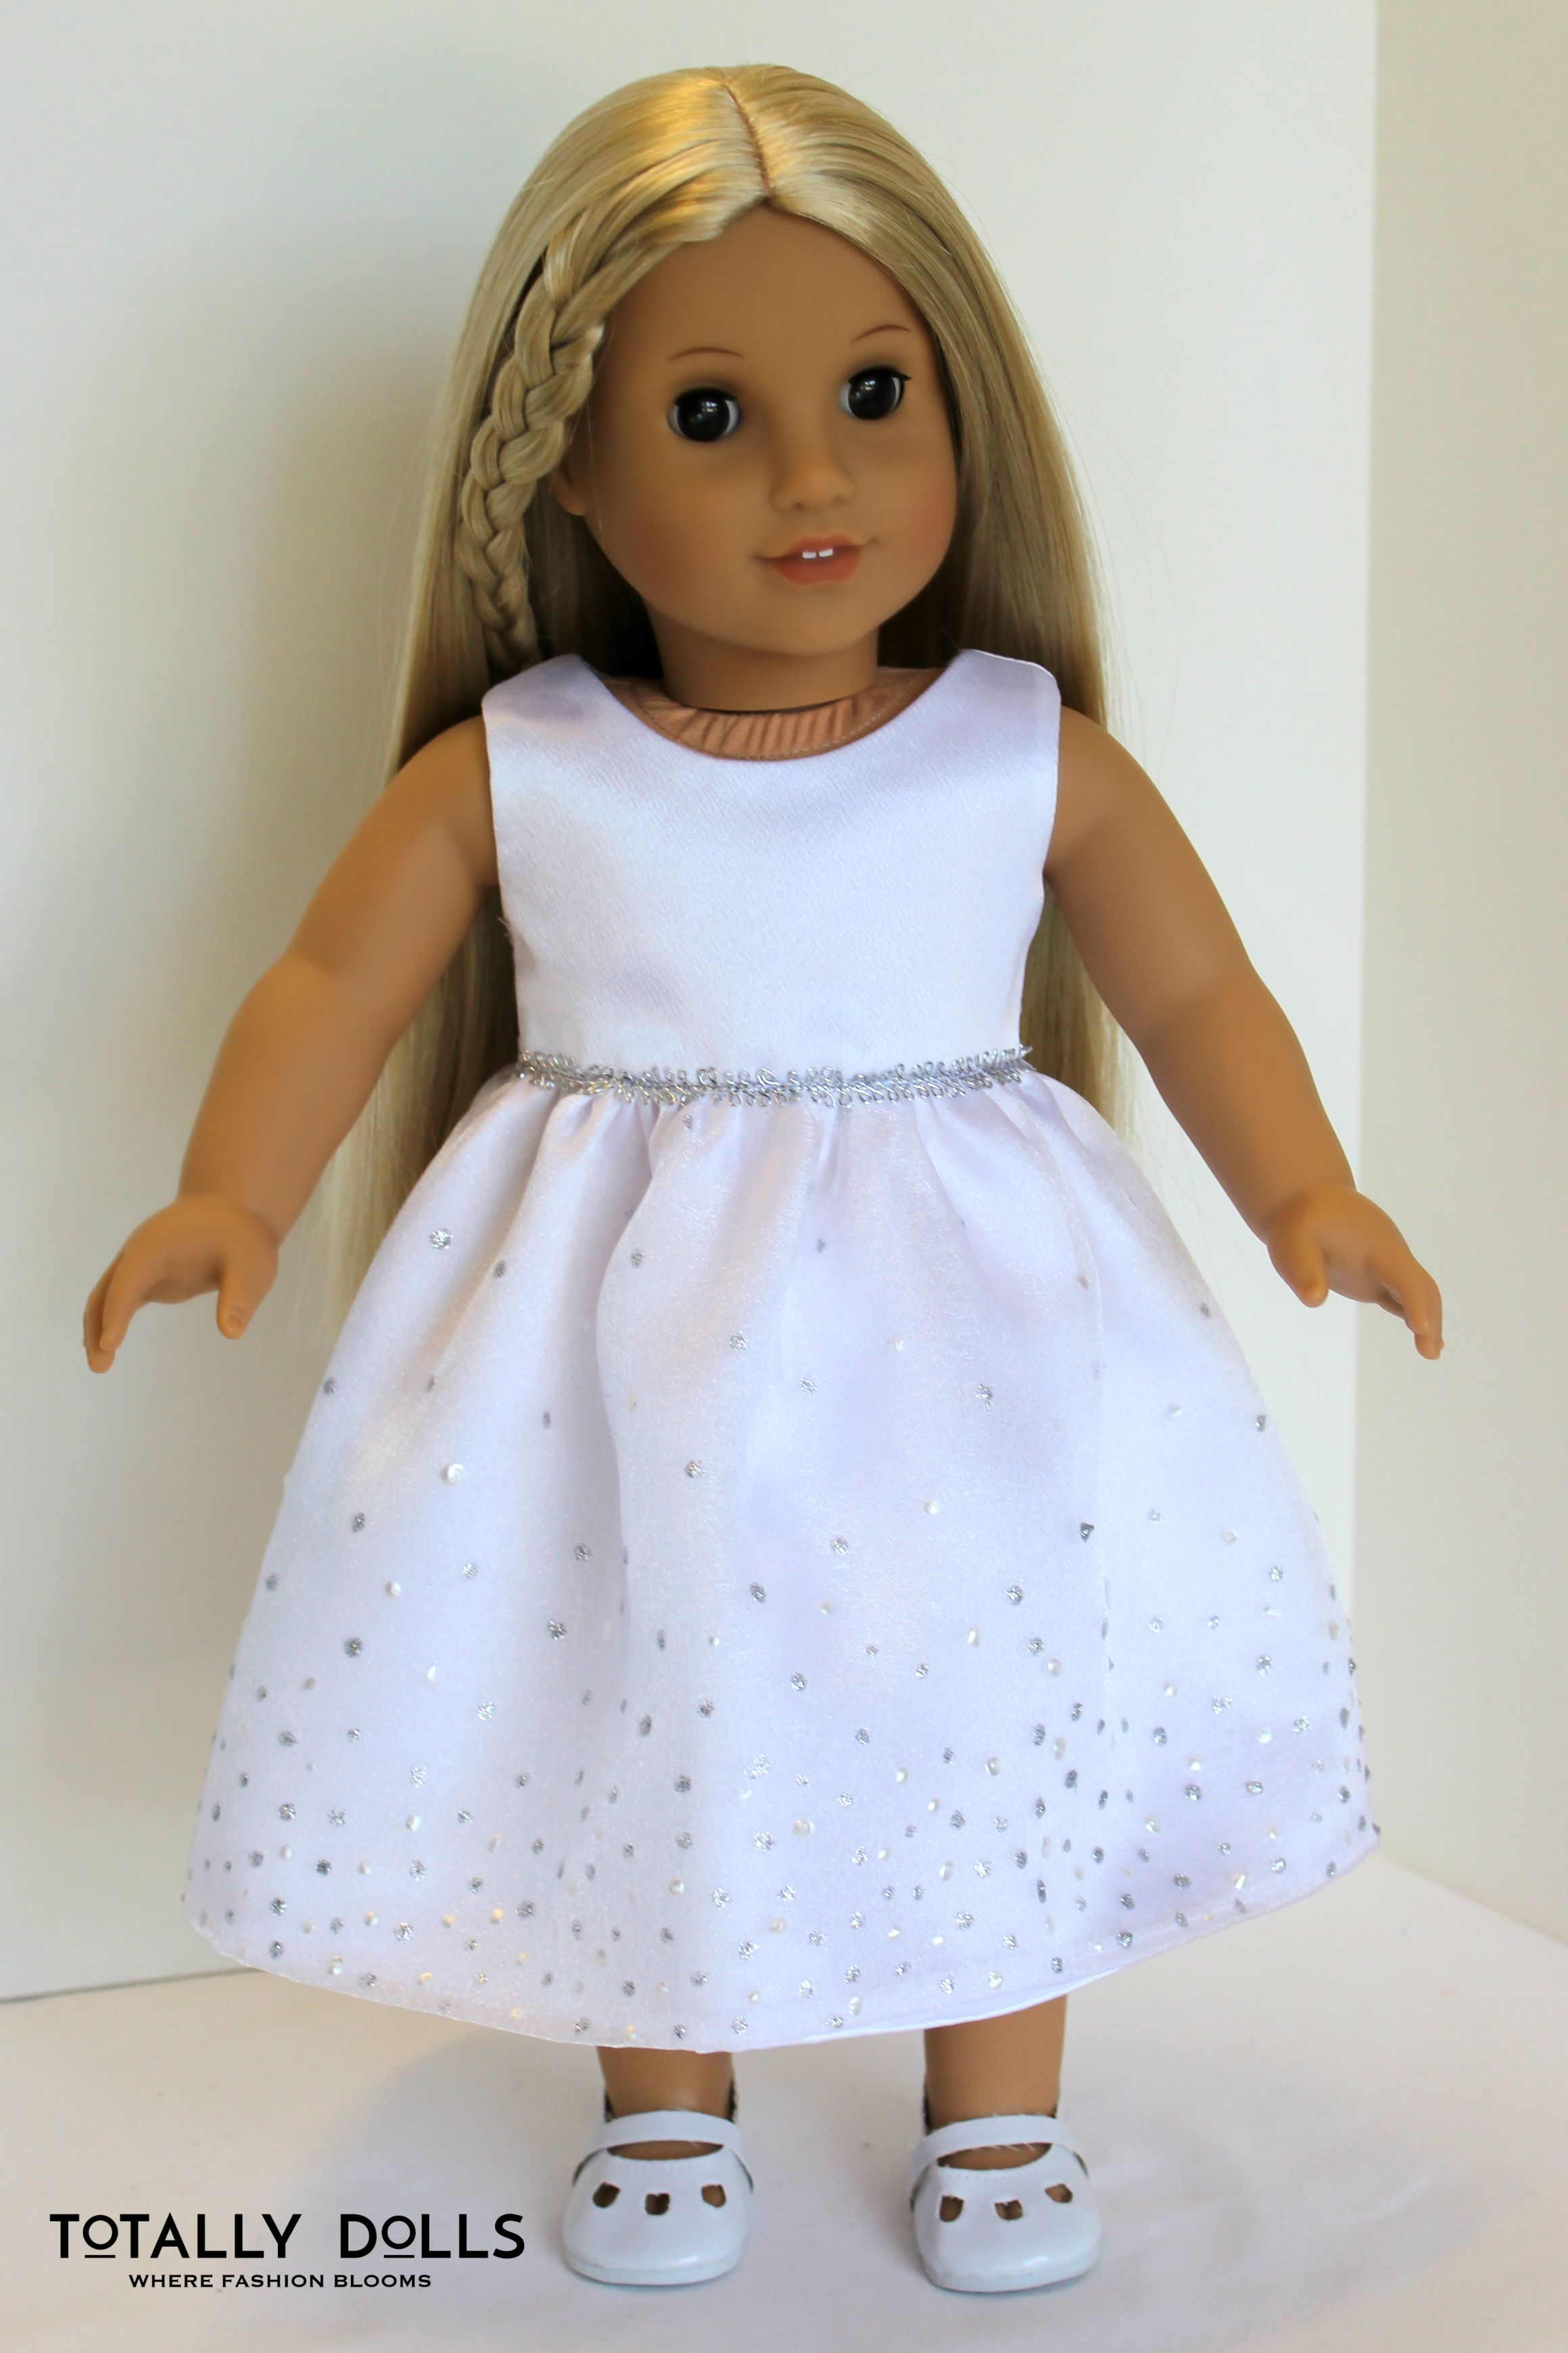 Custom American Girl Doll Clothing First Communion Dress Replica To Fit 18 Inch Dolls Ask Us About Our Cust Doll Clothes Clothes Custom American Girl Dolls